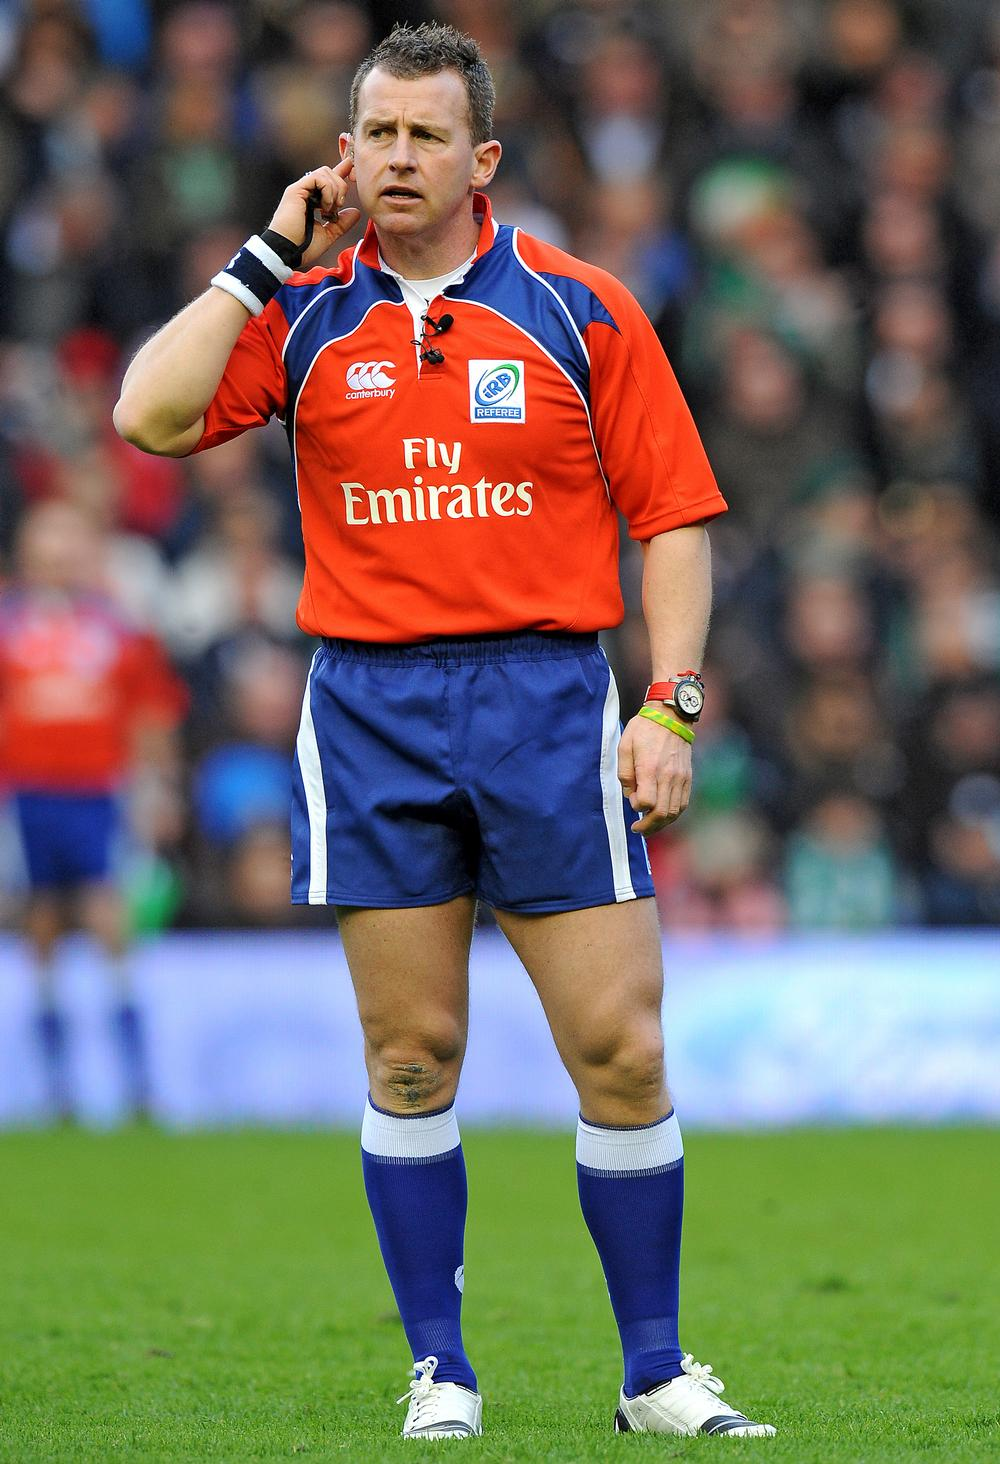 Owens began refereeing rugby union in 1987, and has now refereed 81 international test matches / © Tony Marshall/EMPICS Sport